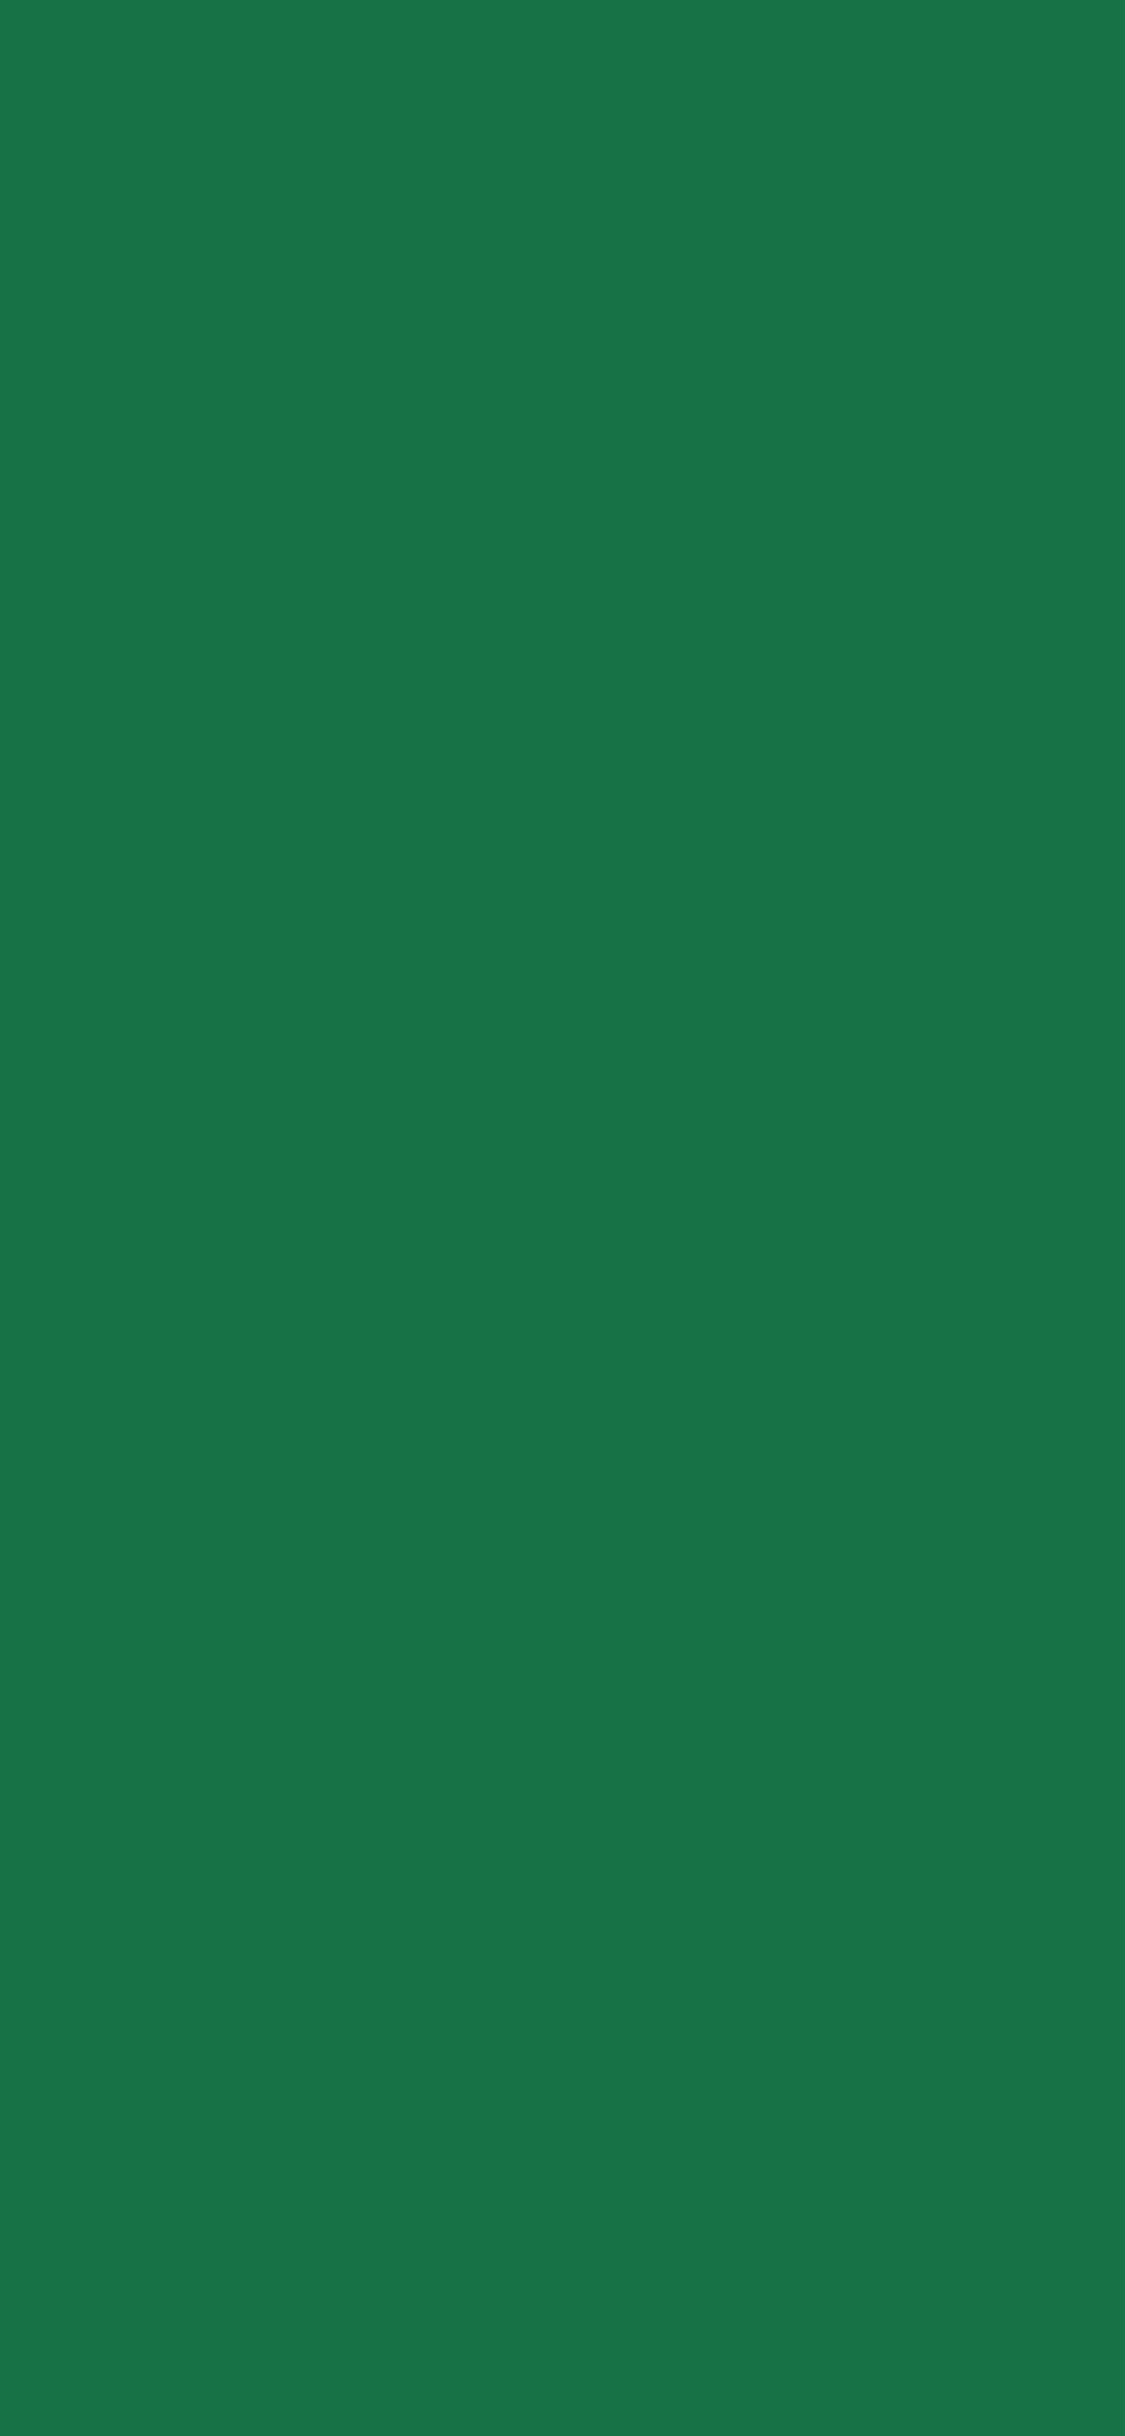 1125x2436 Dark Spring Green Solid Color Background